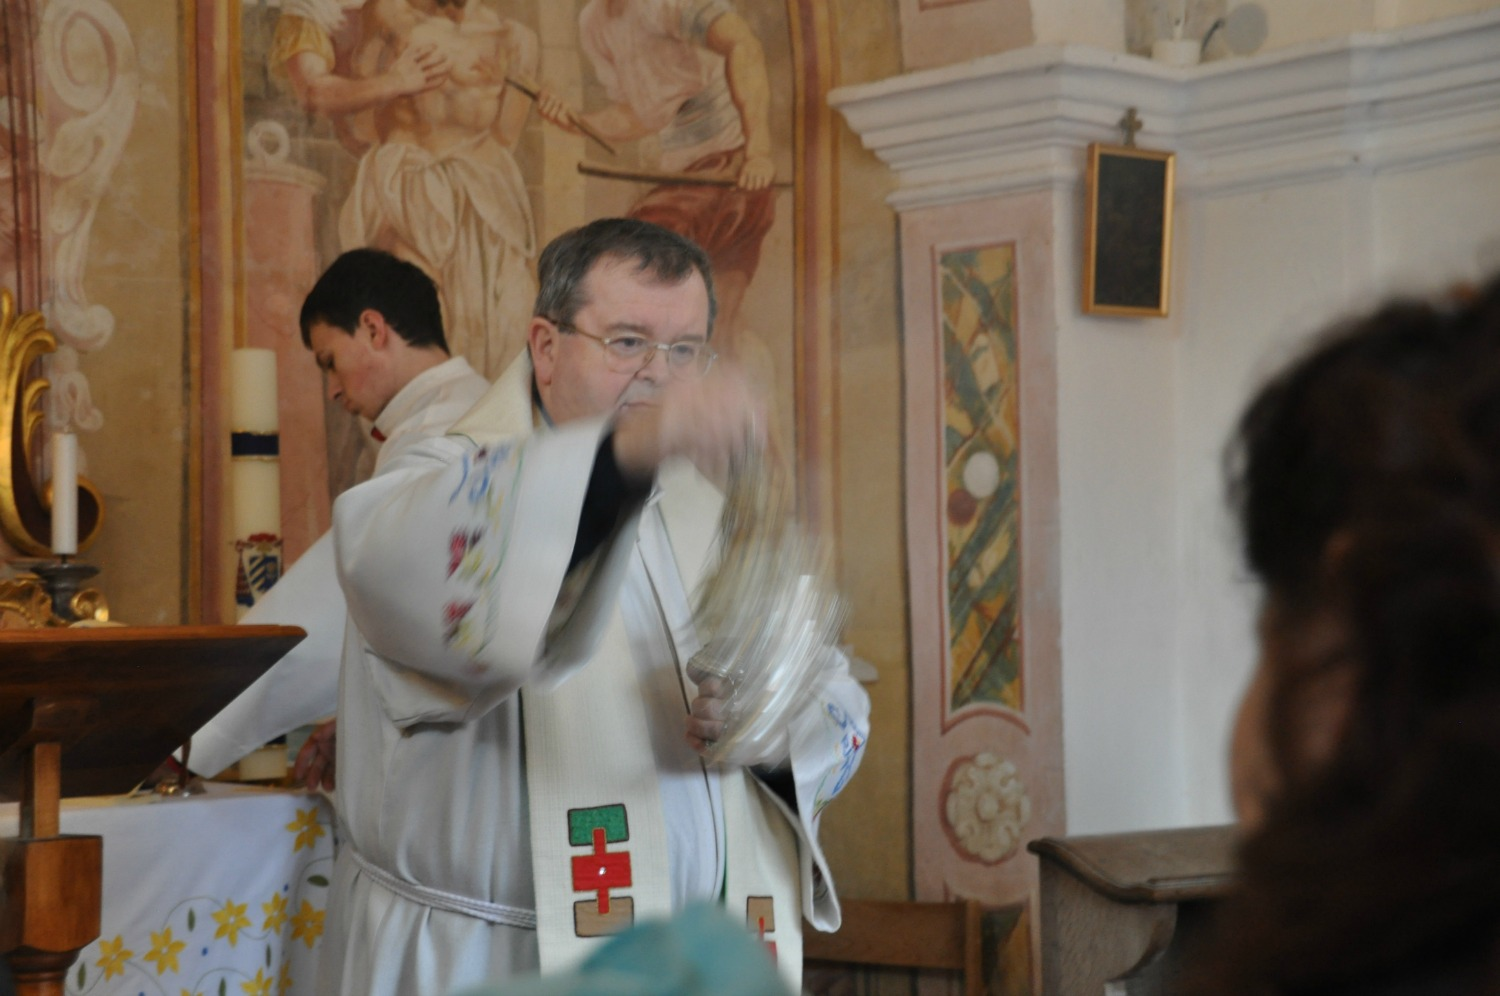 The priest blessing the baskets and those present. Photos: Meg Pier